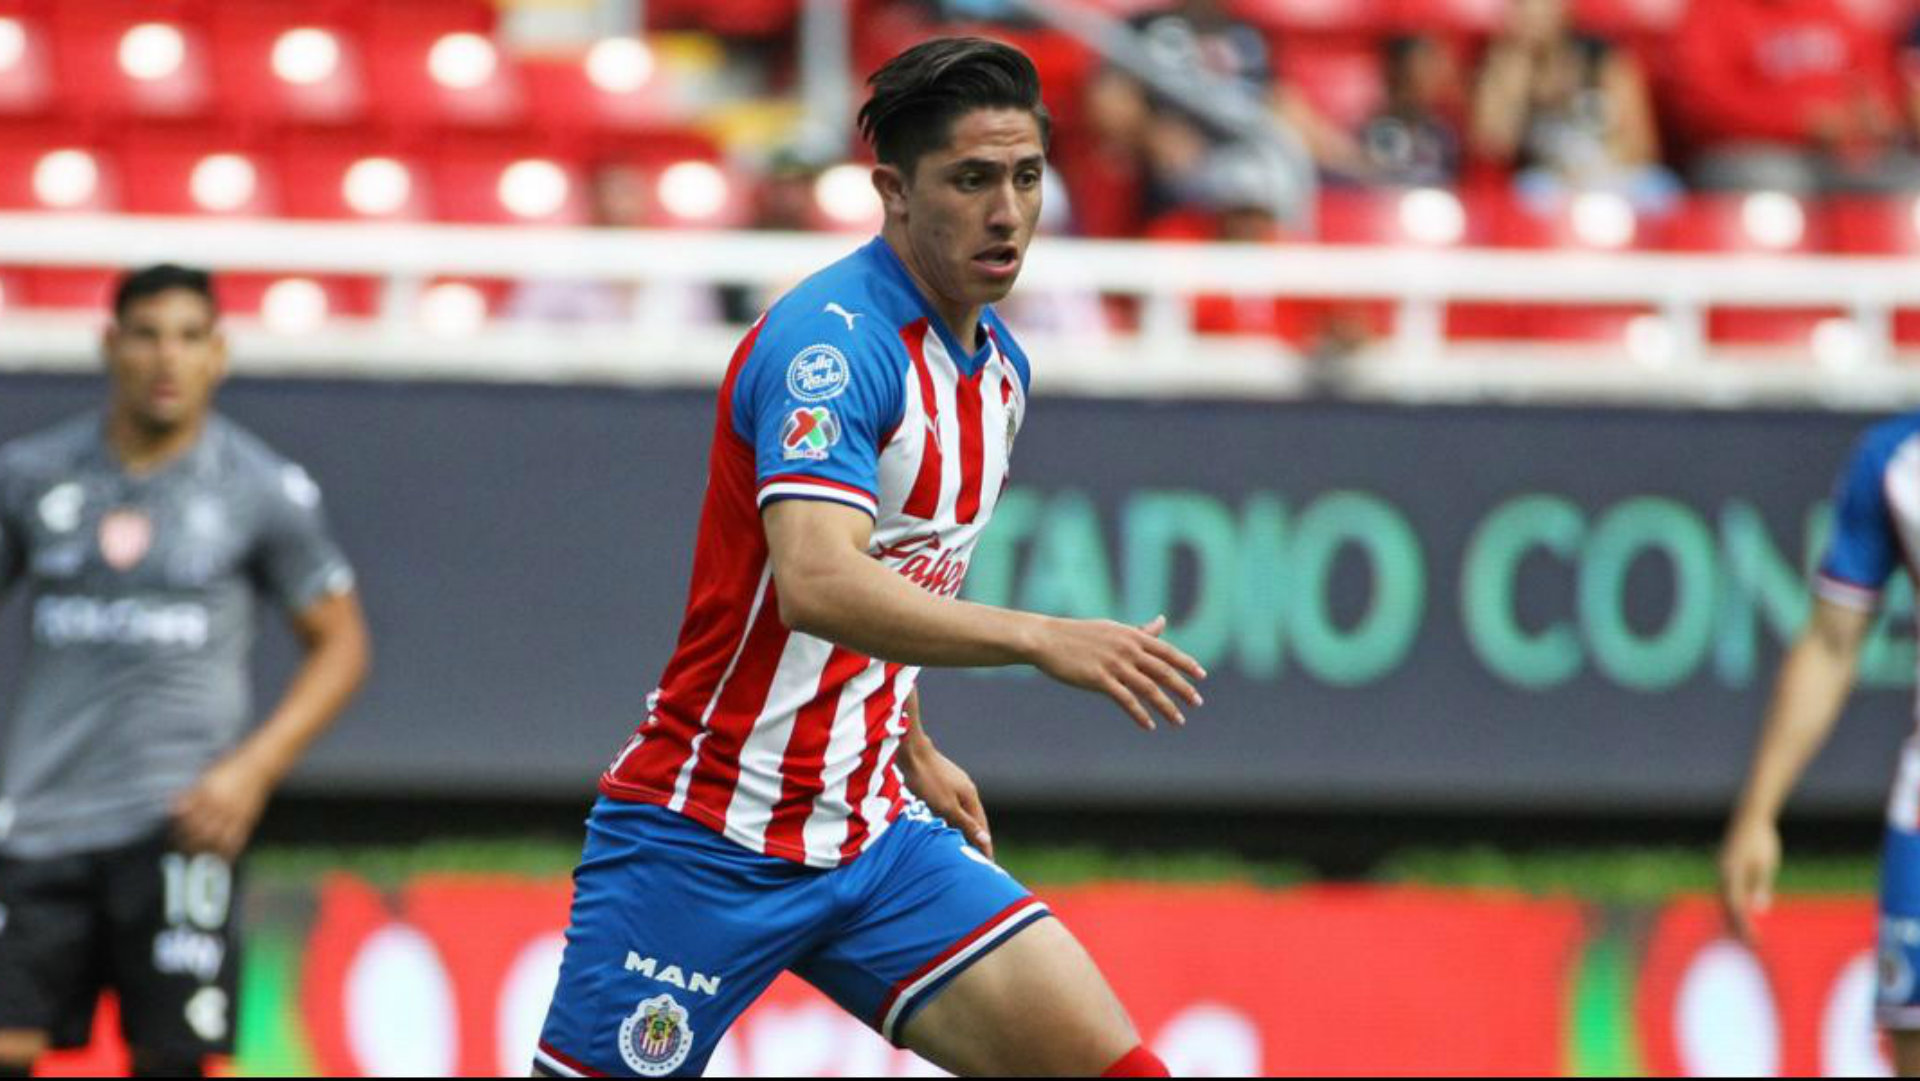 Alan Cervantes dreaming of Chivas title and European move